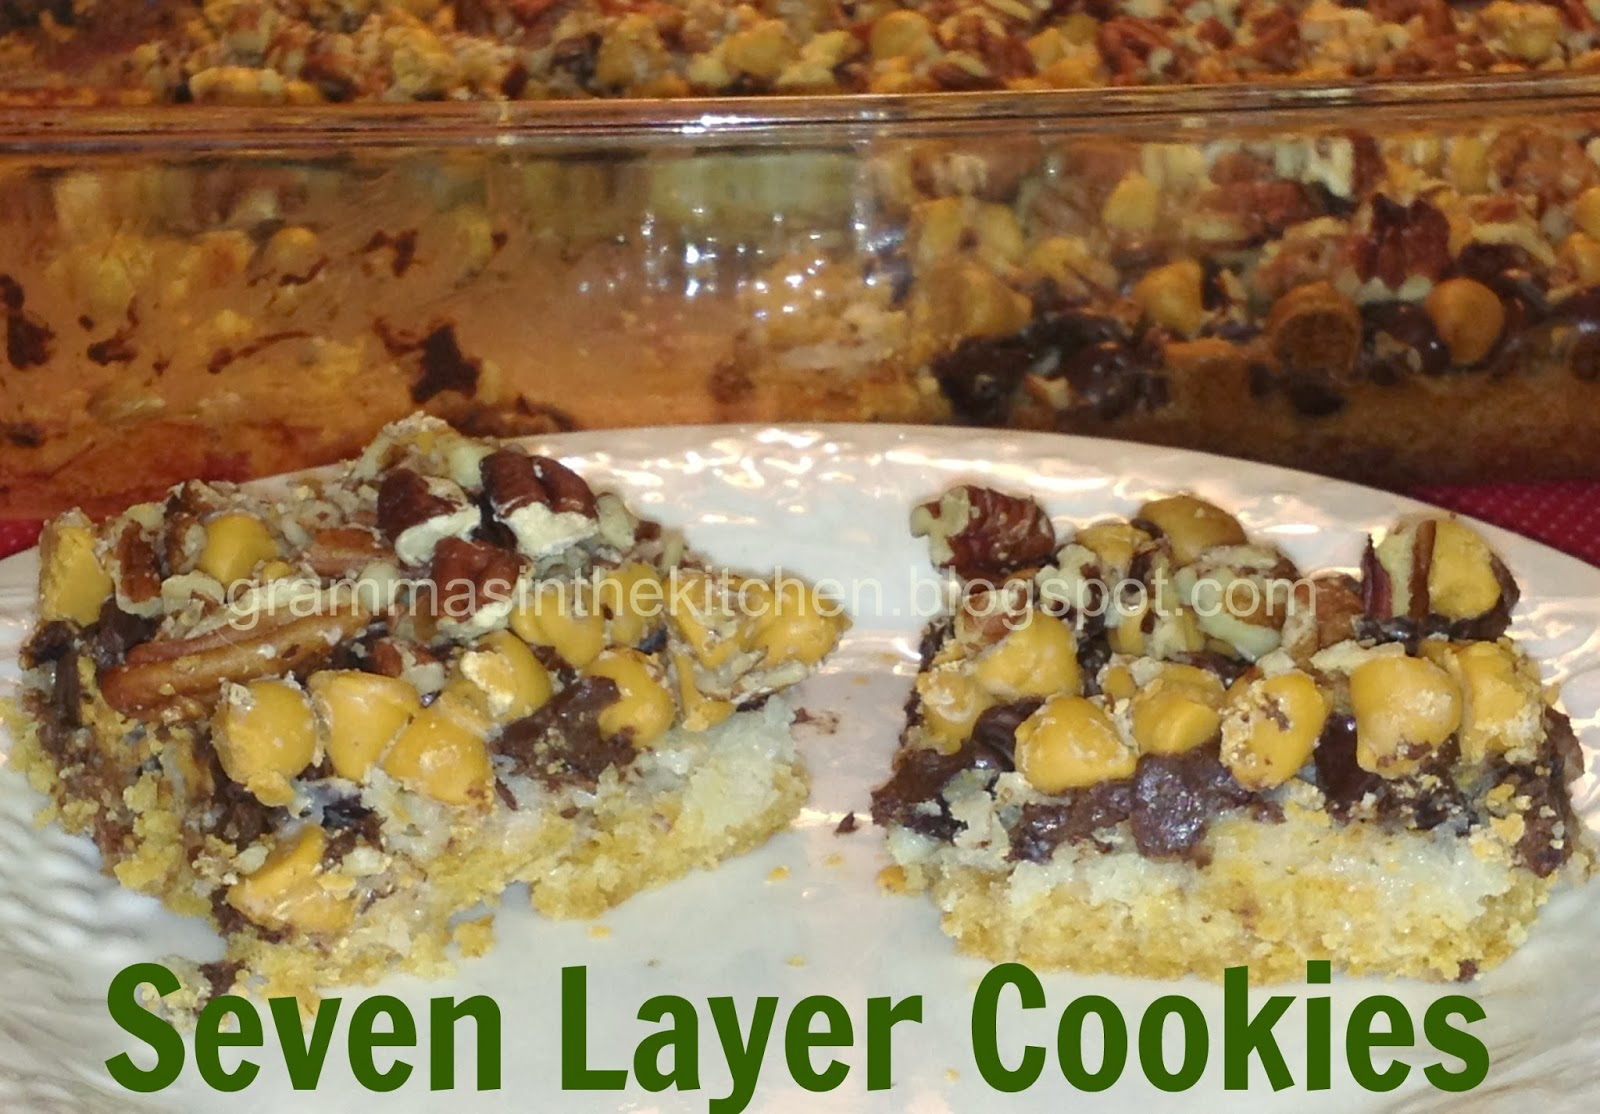 Gramma's in the kitchen: Seven Layer Cookies